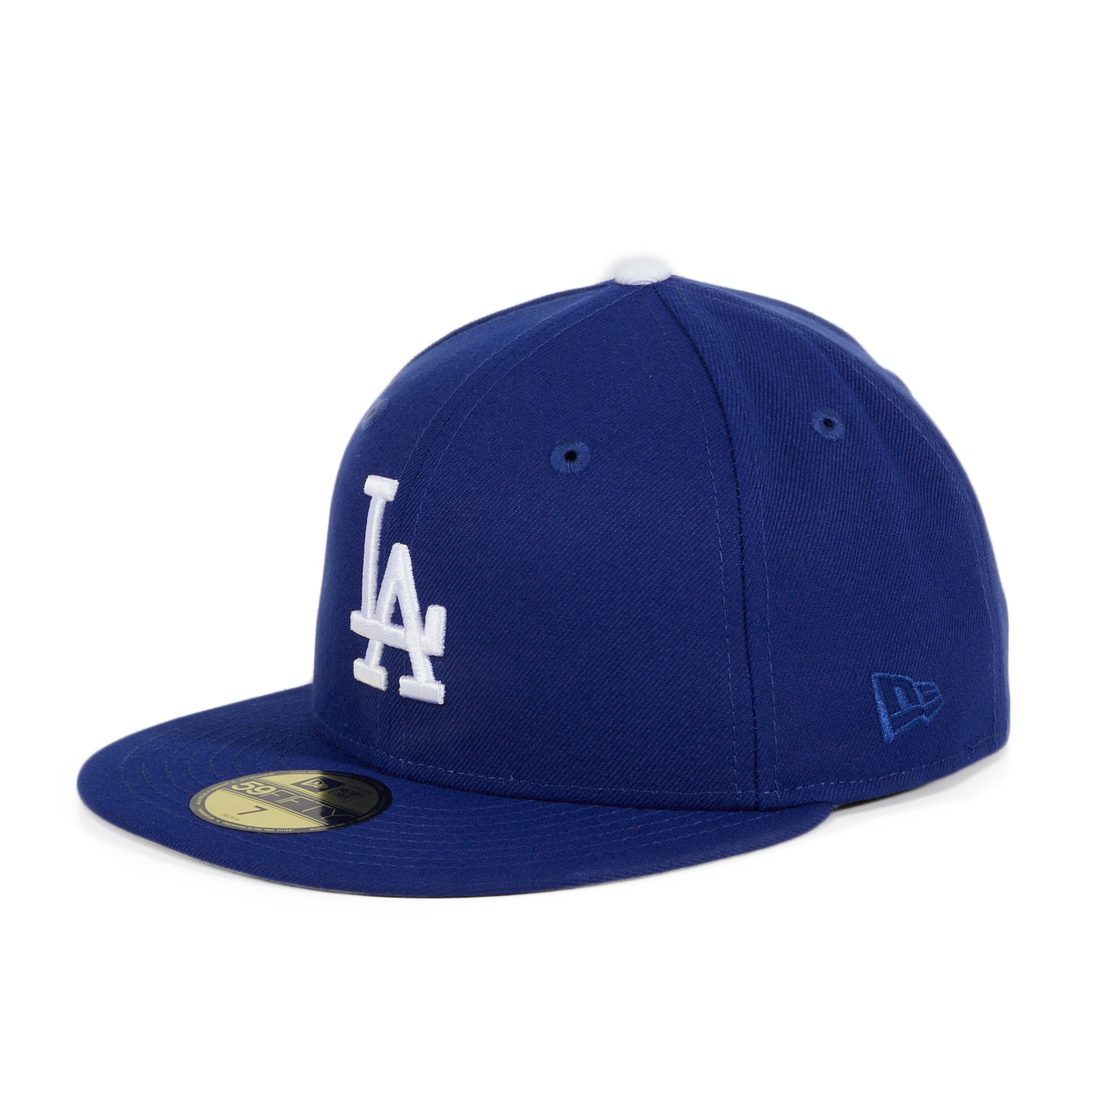 Exclusive New Era 59Fifty Los Angeles Dodgers 50th Anniversary Patch Hat - Royal